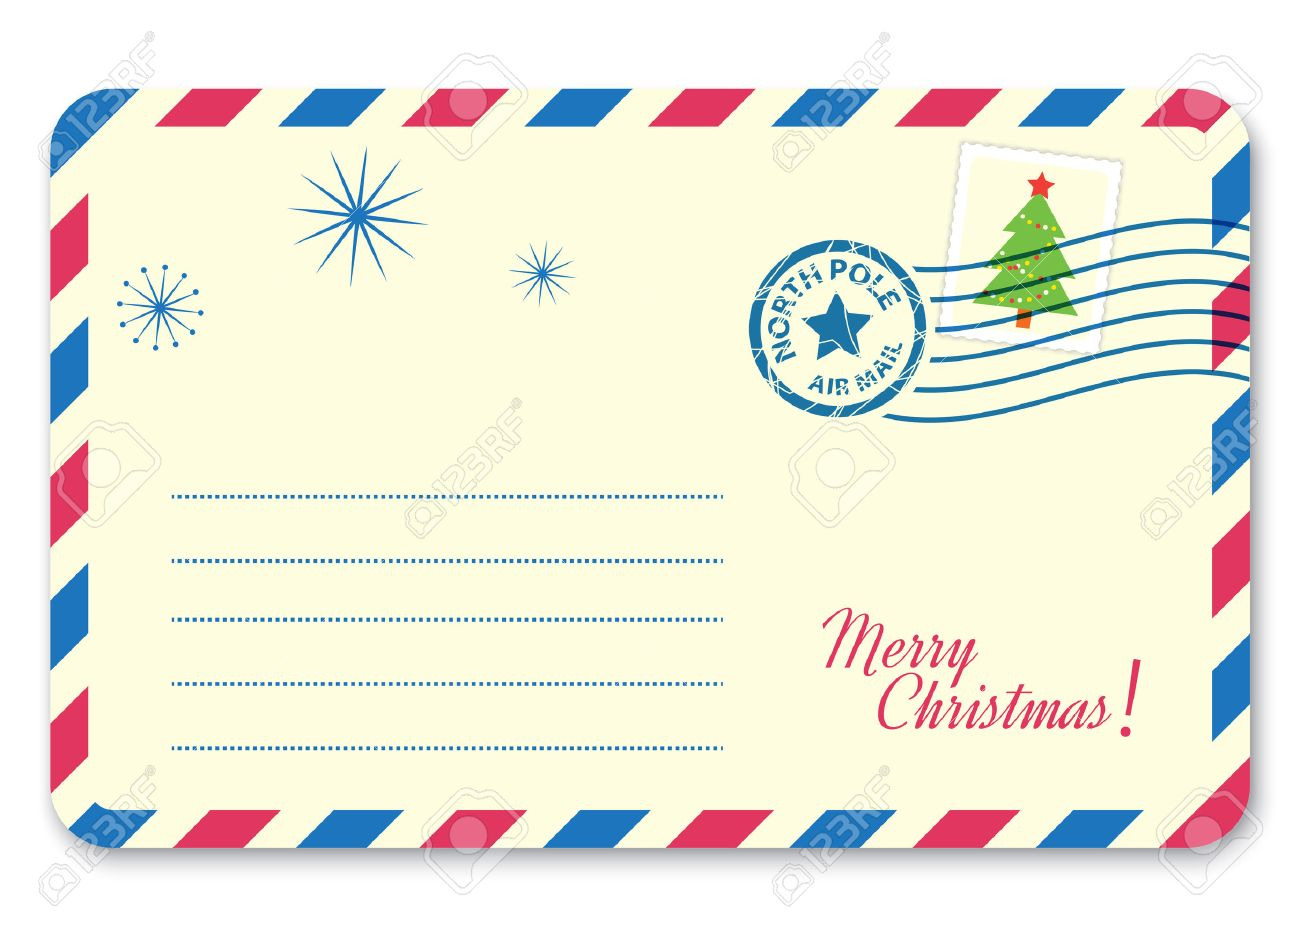 Example Fax Cover Sheet20 letters to santa and printable envelopes – Santa Claus List Template